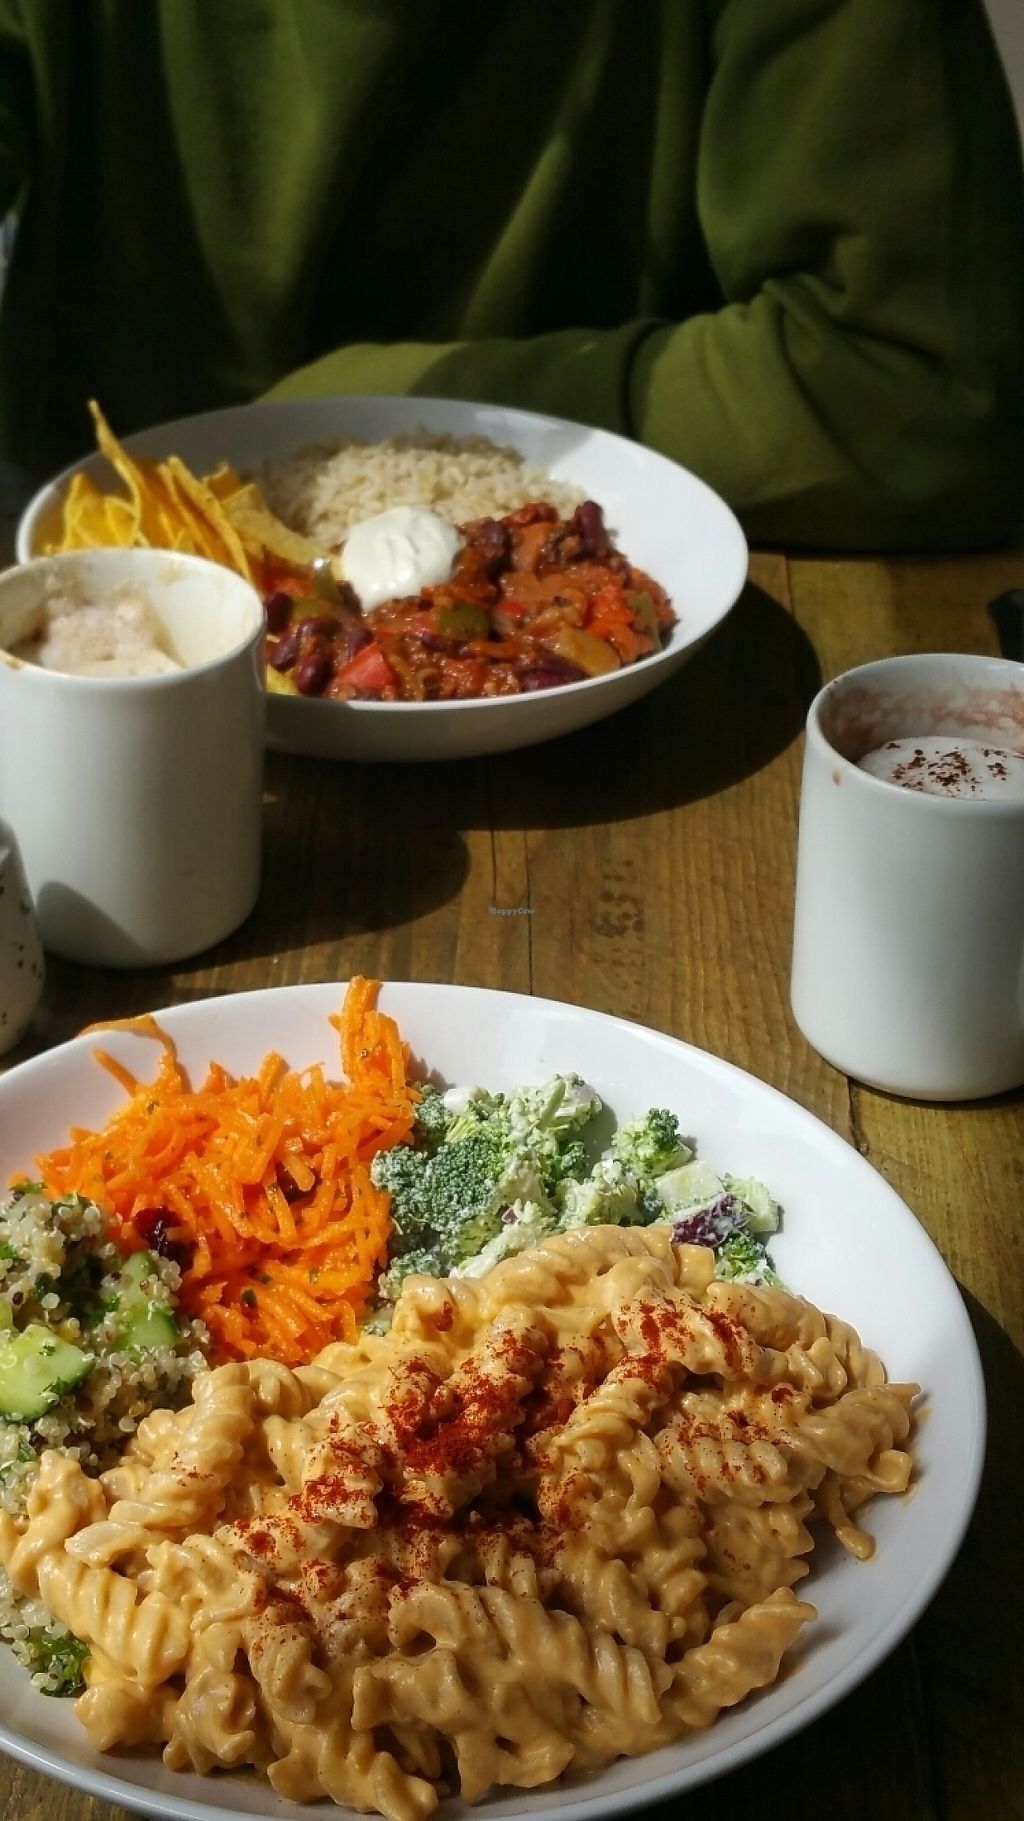 """Photo of The Planet Cafe  by <a href=""""/members/profile/HeidiHargreaves"""">HeidiHargreaves</a> <br/>great potion size! will not leave you hungry! <br/> May 18, 2017  - <a href='/contact/abuse/image/76724/259969'>Report</a>"""